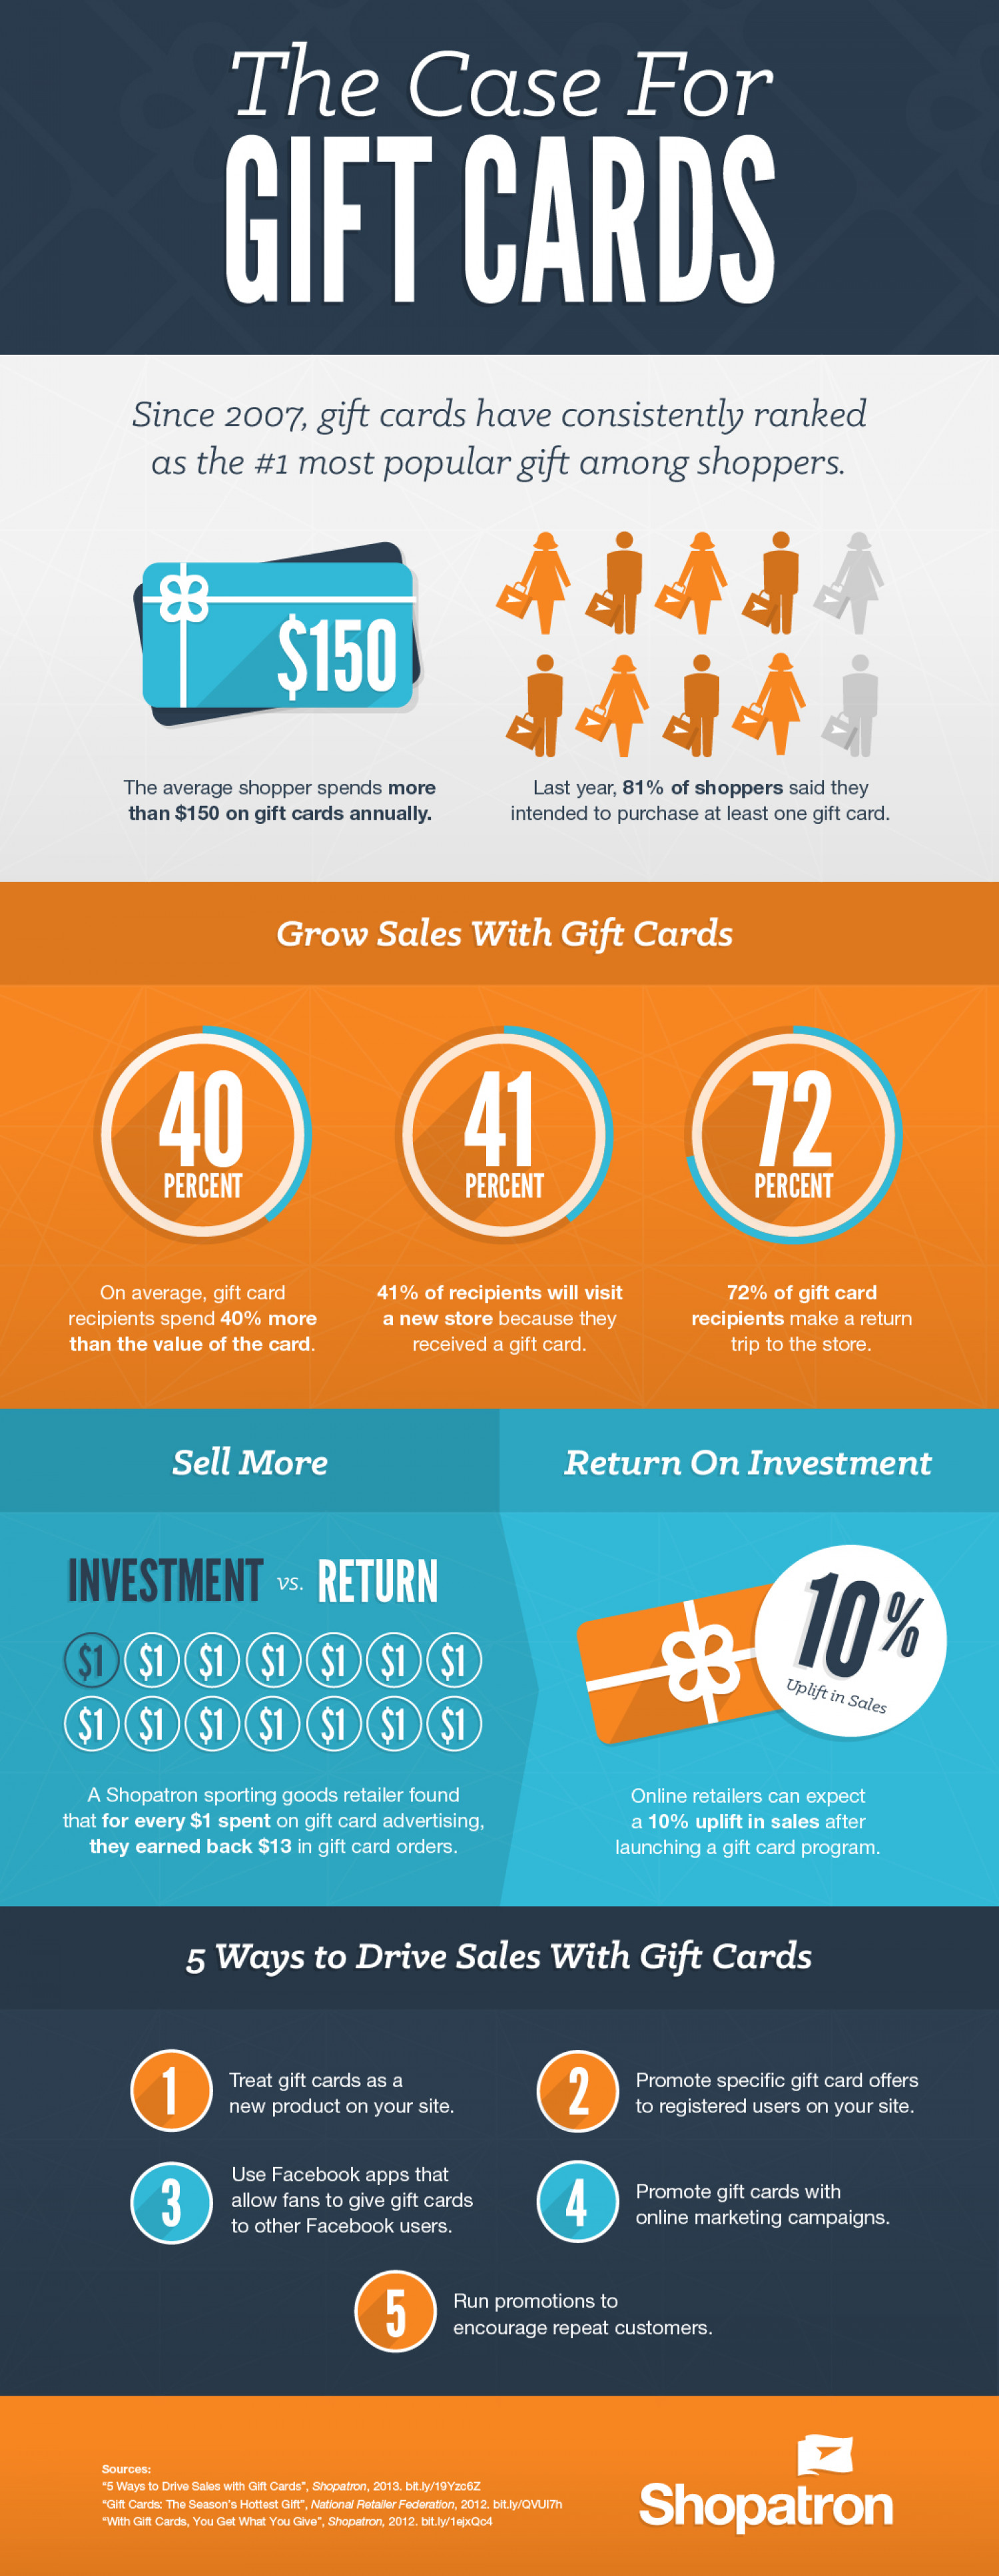 The Case for Gift Cards Infographic